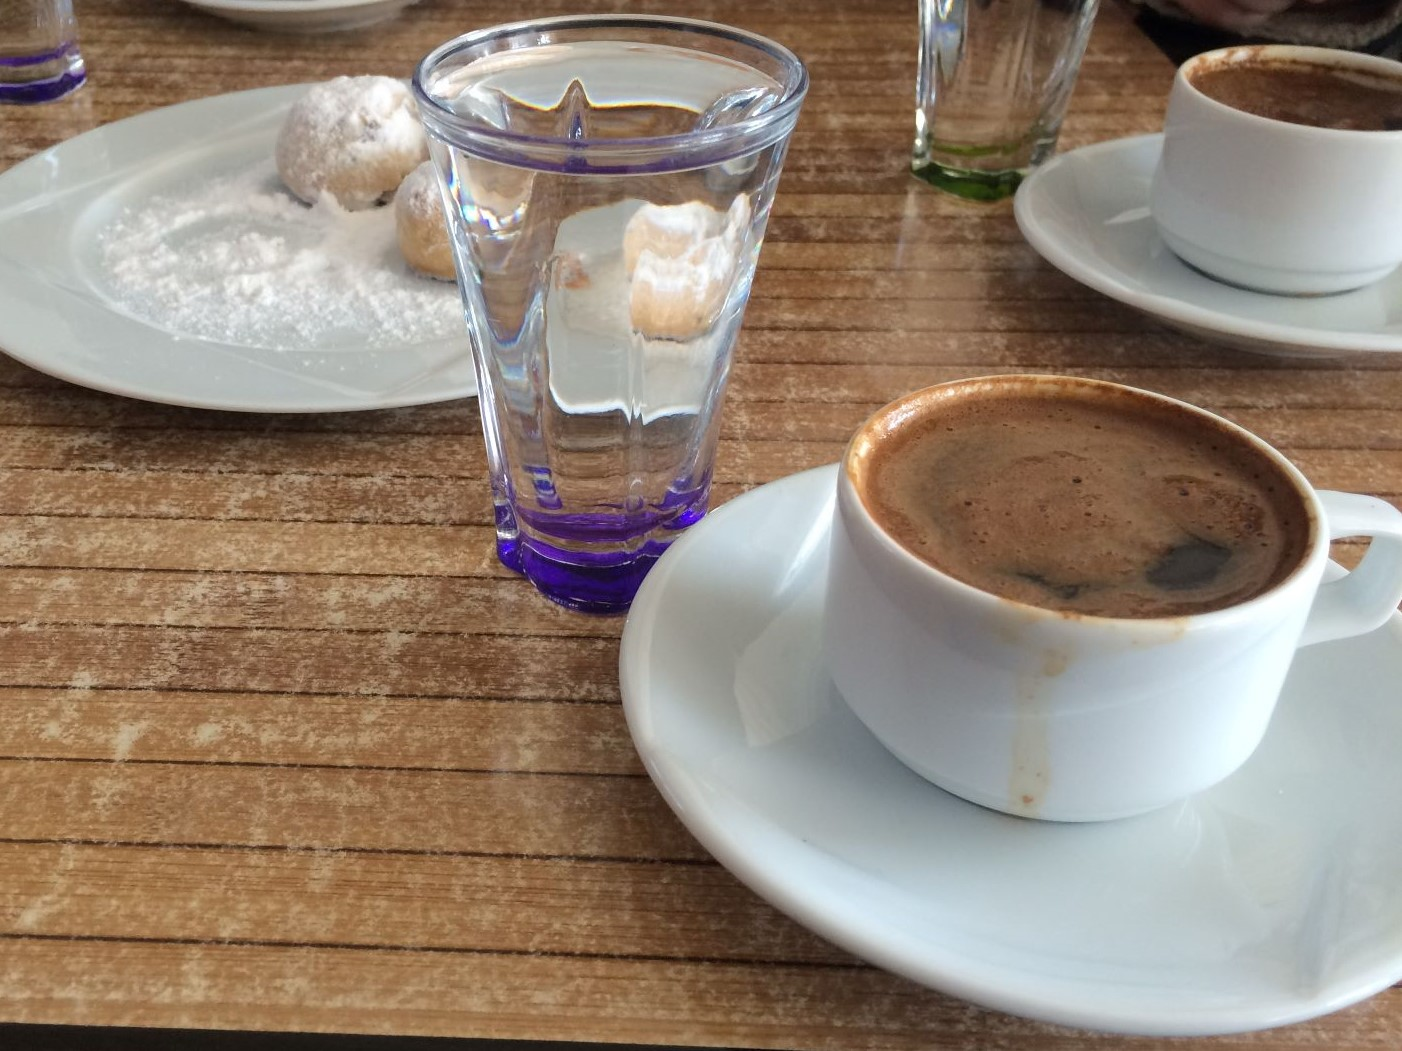 A beautifully presented c coffee alongside Greek pastries, somewhere on Gökçeada. April 2016.